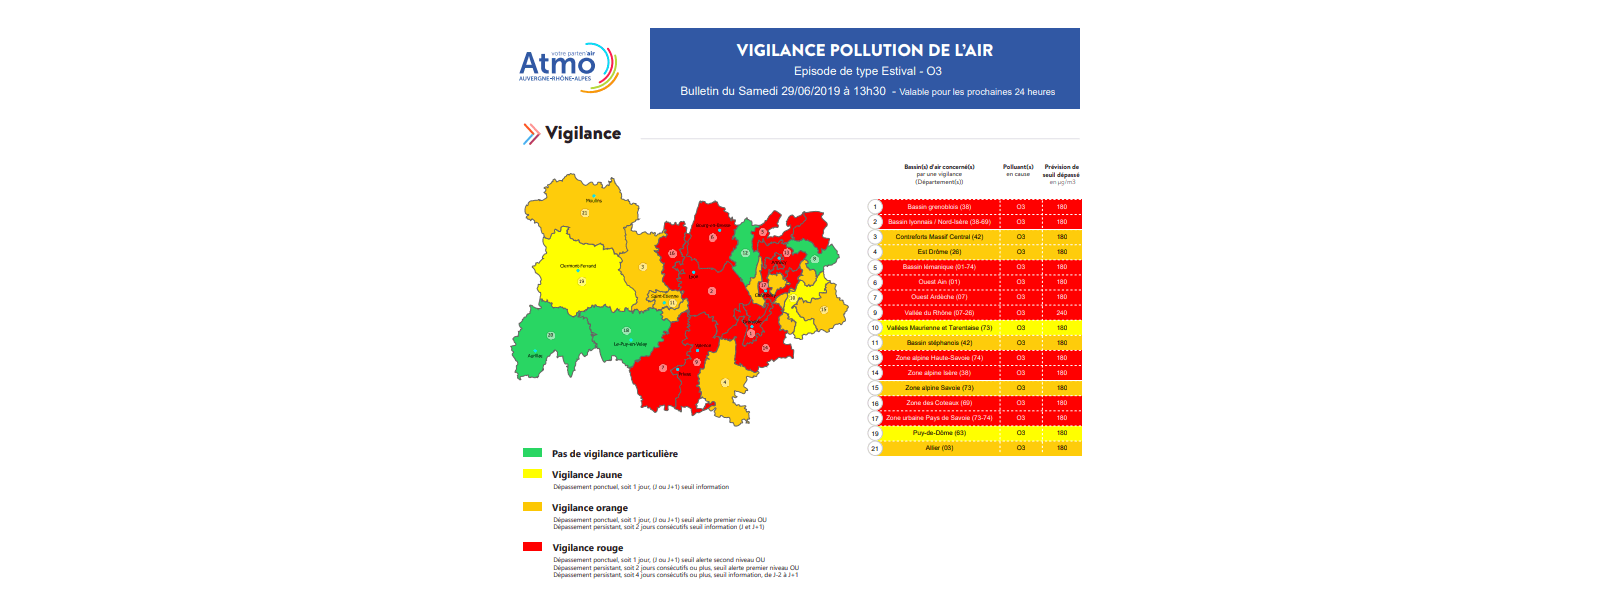 Vigilance pollution air - 29 juin 2019